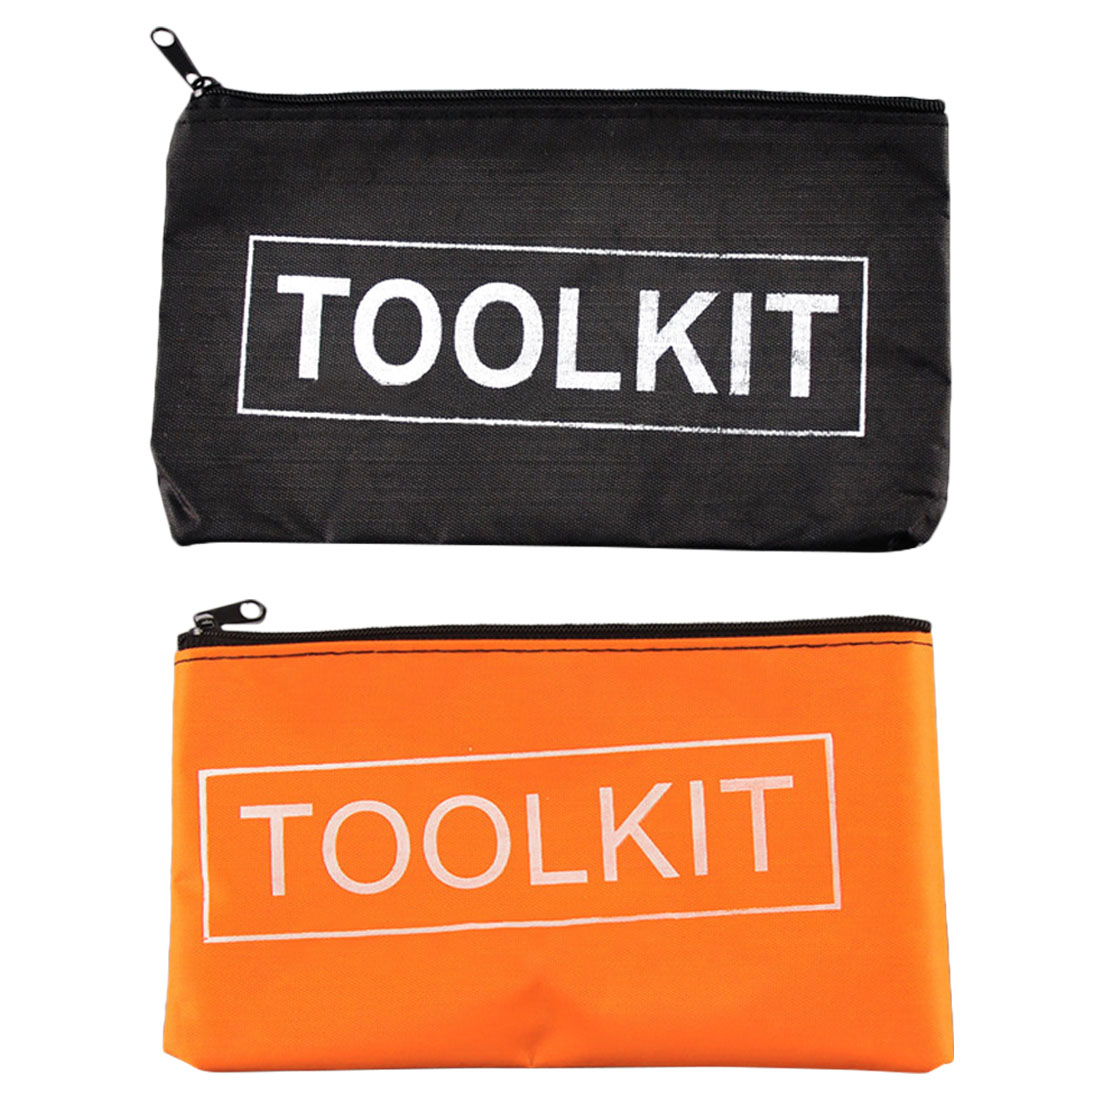 Waterproof Oxford Cloth Tools Set Bag Zipper Storage Instrument Case Pouch Tool Kit Packaging Bag Tool Organizers